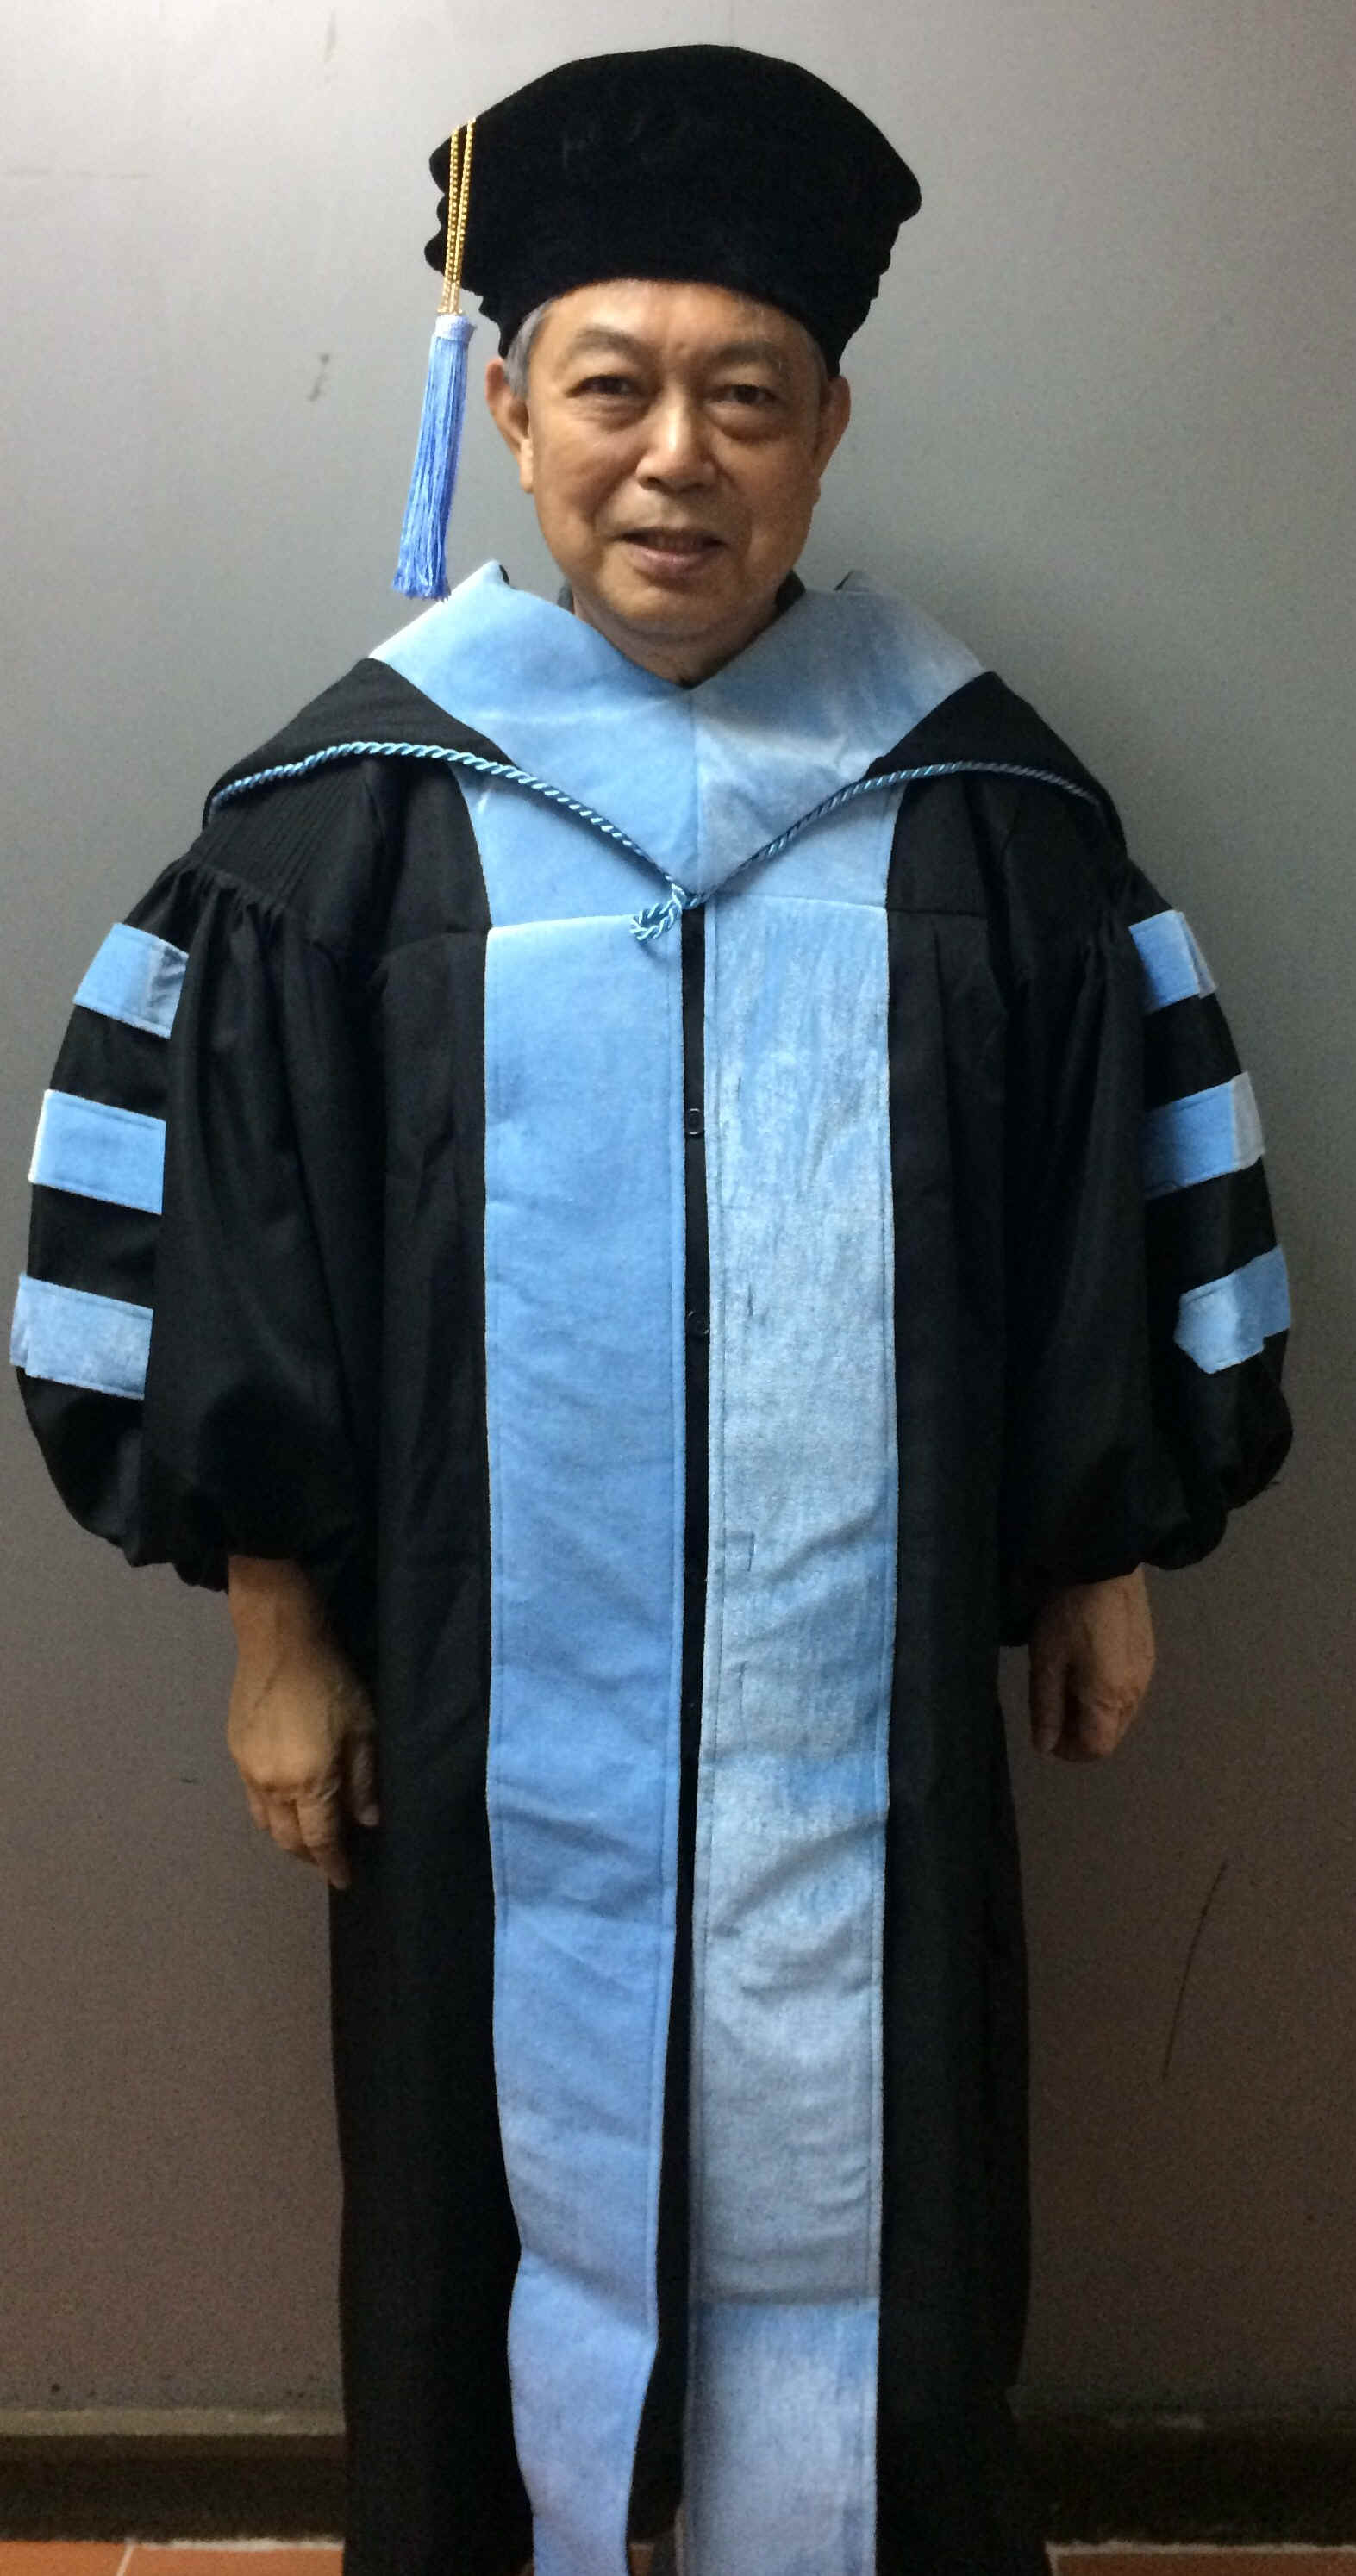 Graduation Gowns Toga rental or sale Filmo SG 98365486 | 1573 x 2989 jpeg 248kB